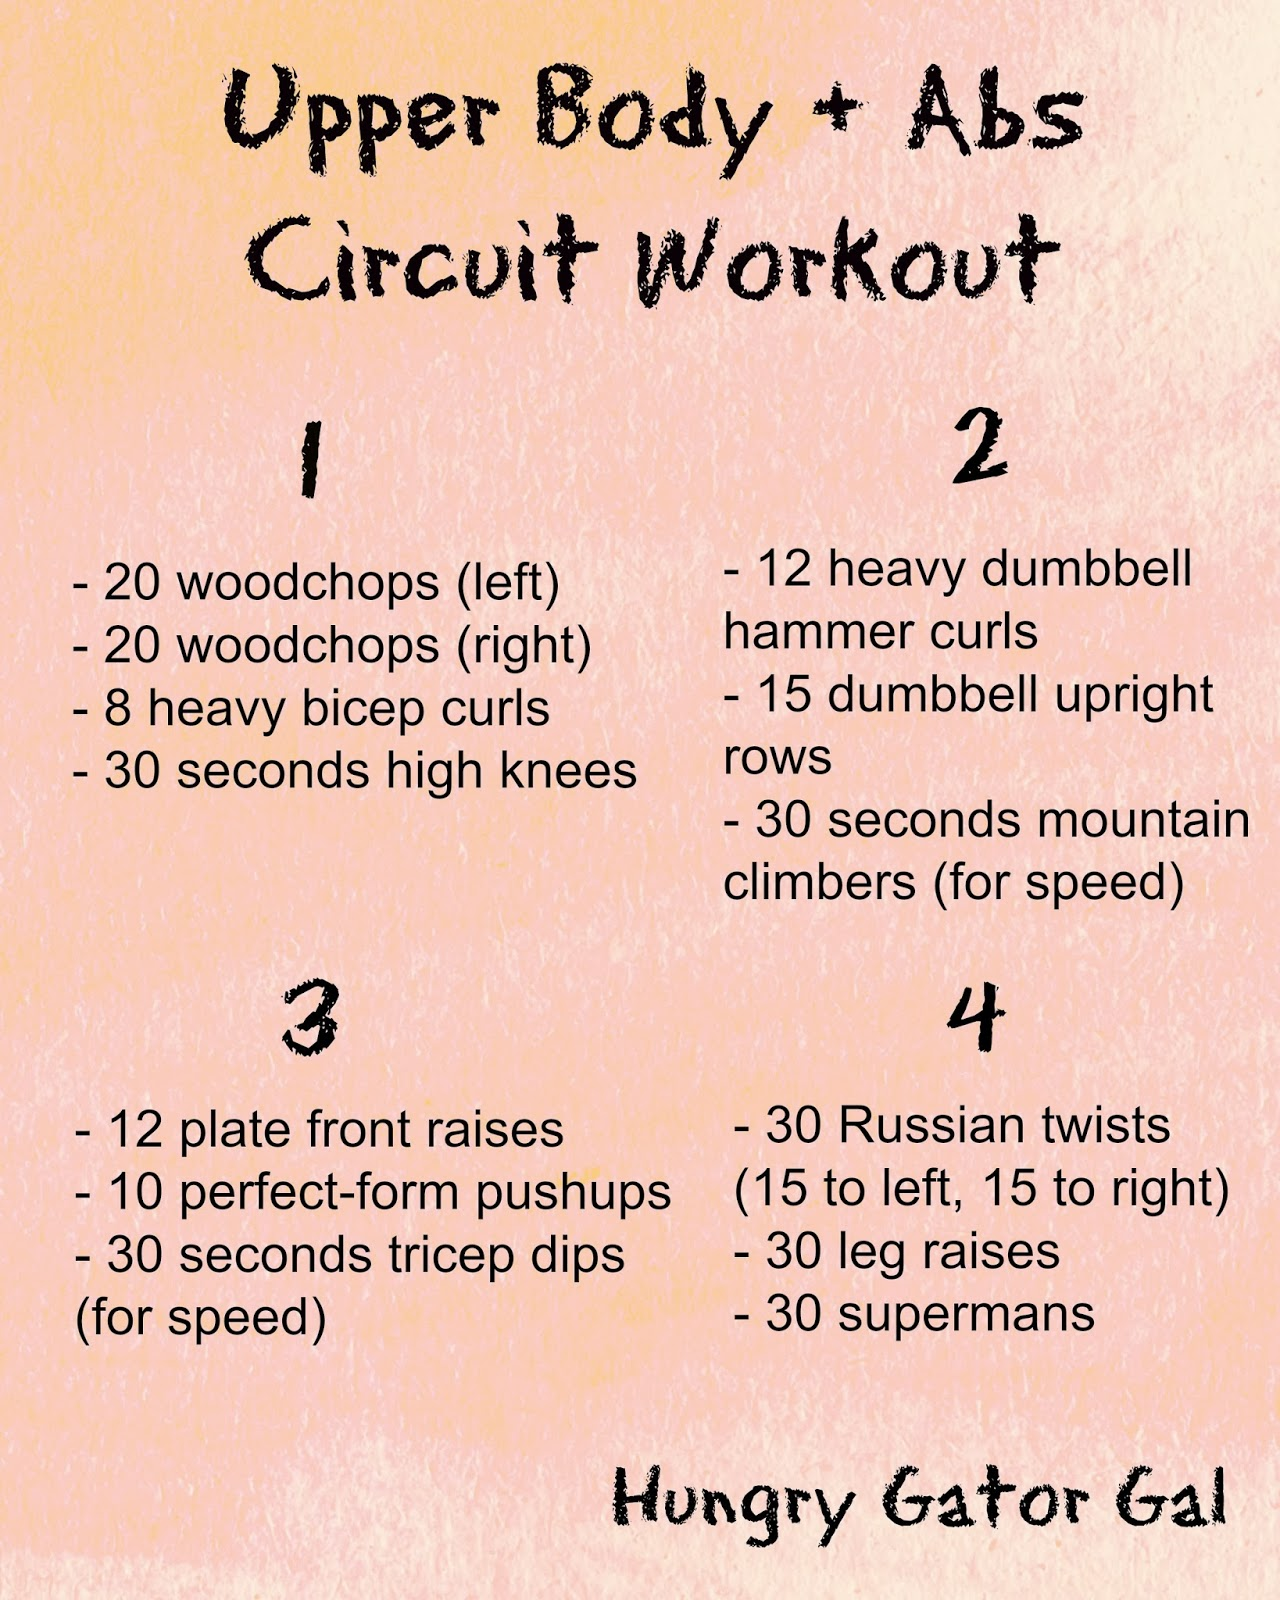 Upper Body + Abs Circuit Workout from hungrygatorgal.com